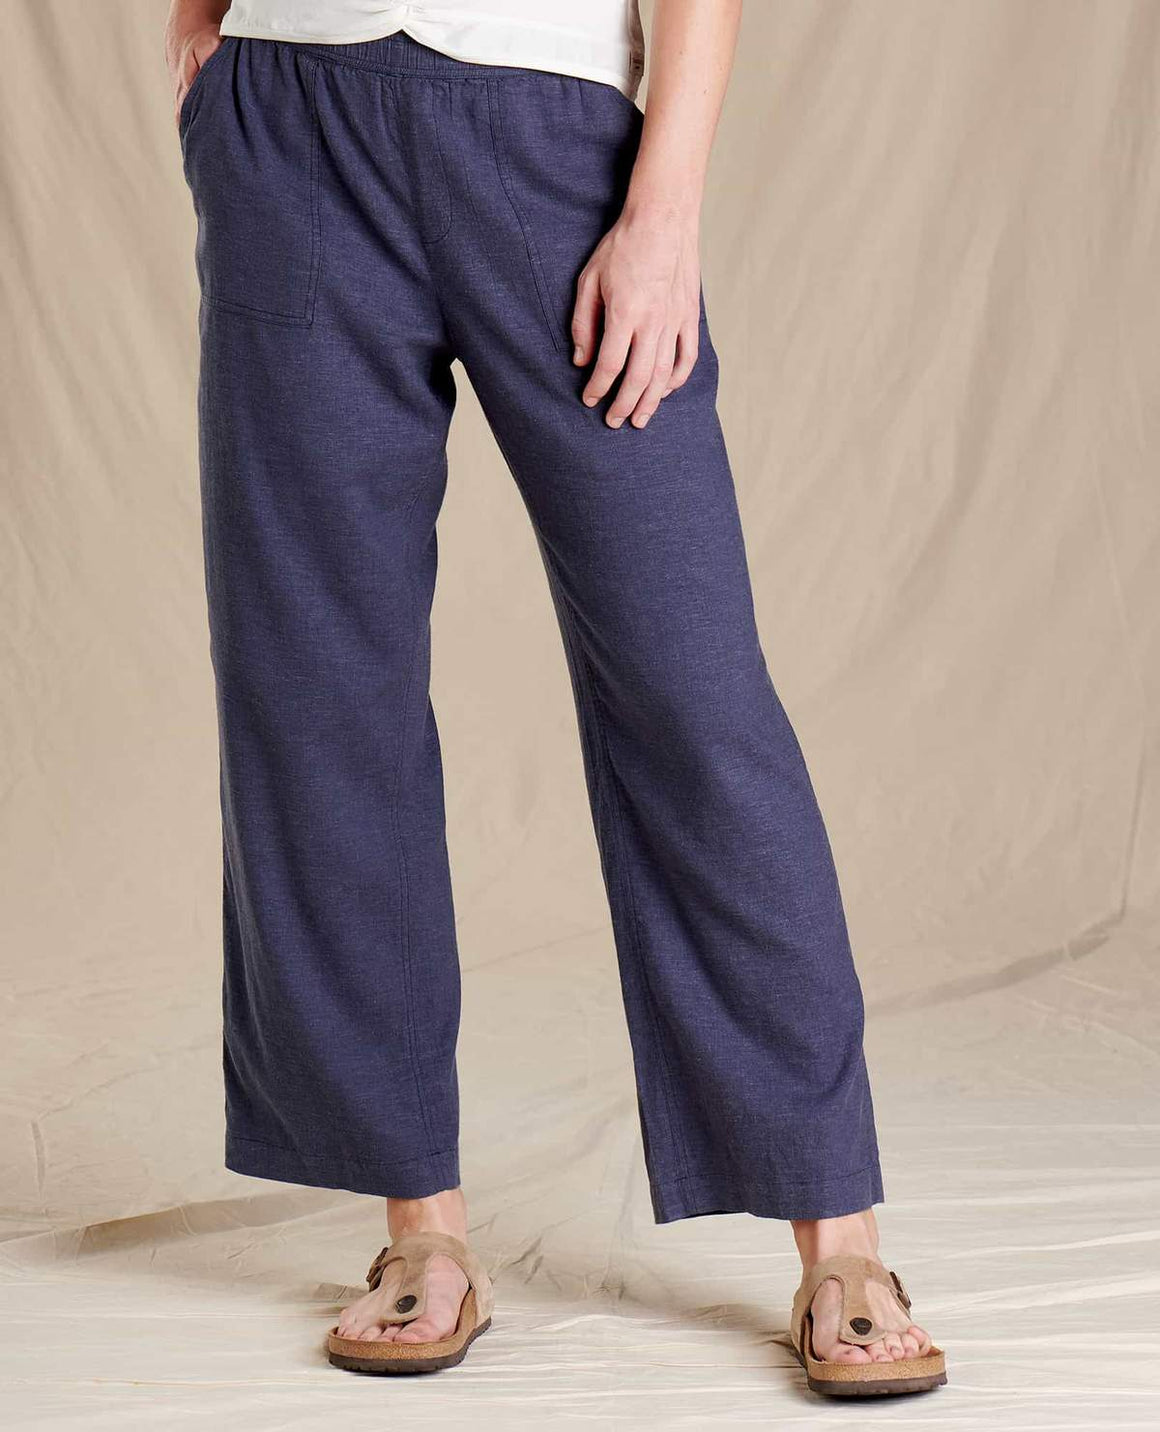 Taj Hemp Pants